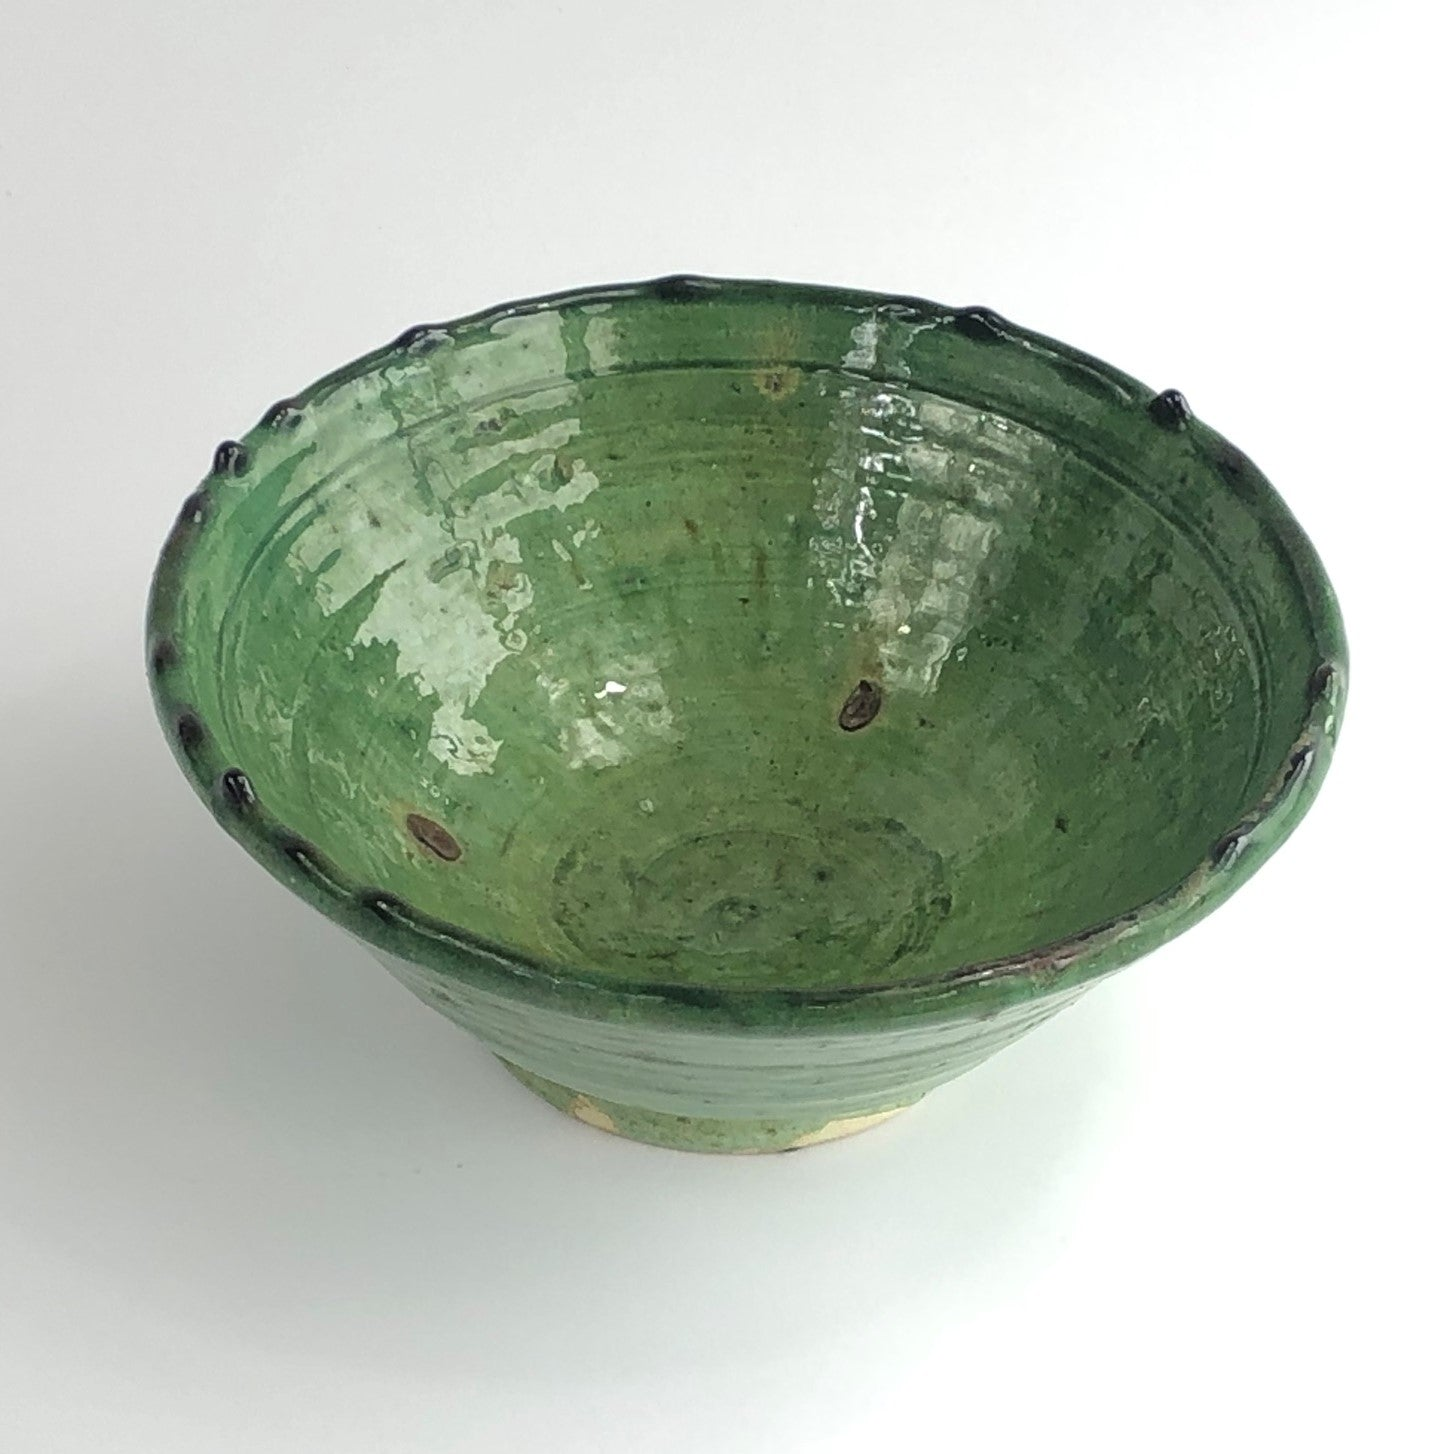 Tamegrout bowl Medium